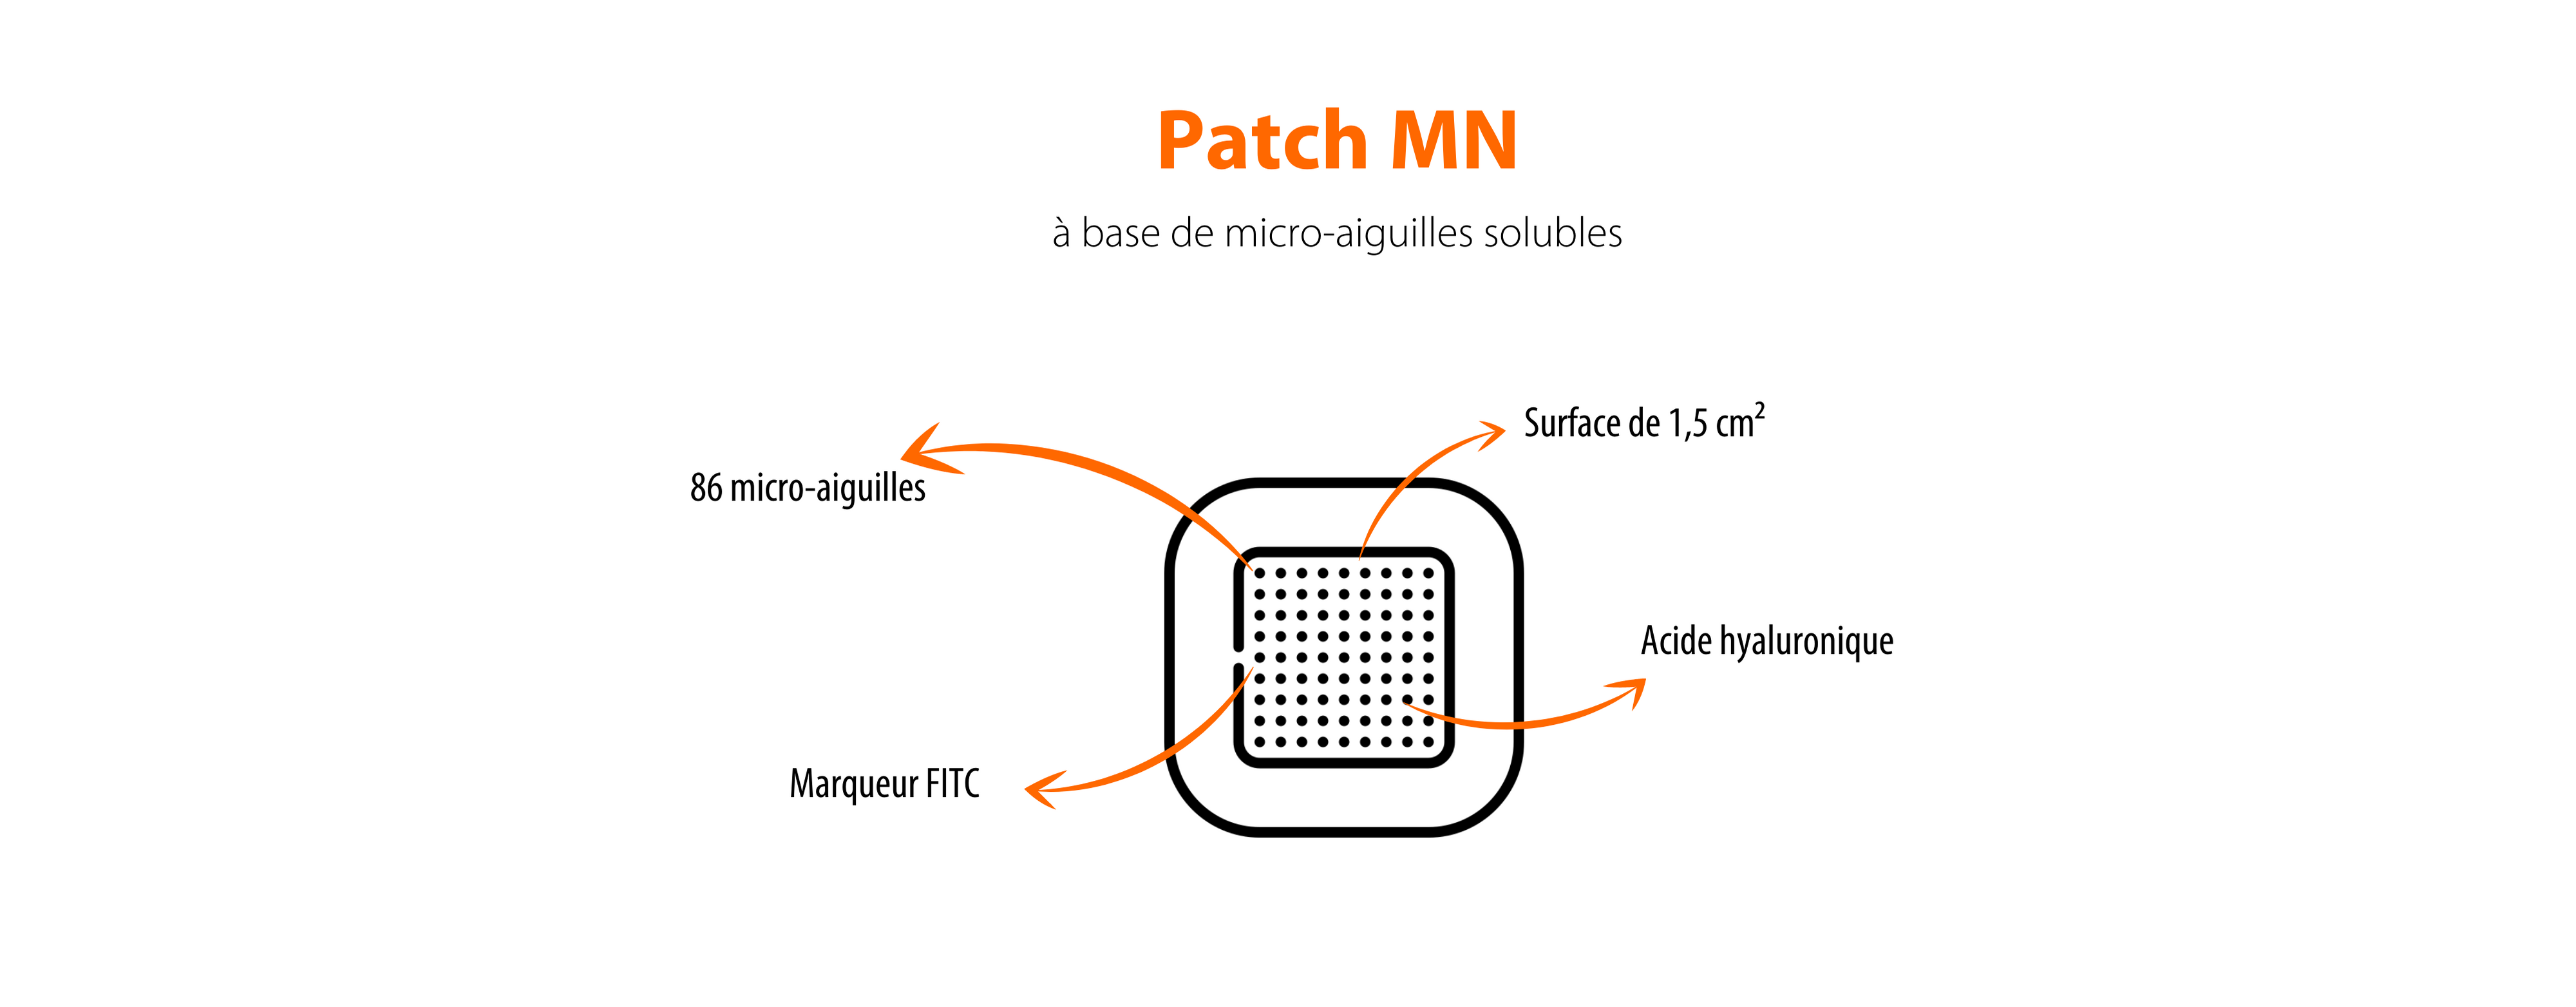 Patch MN